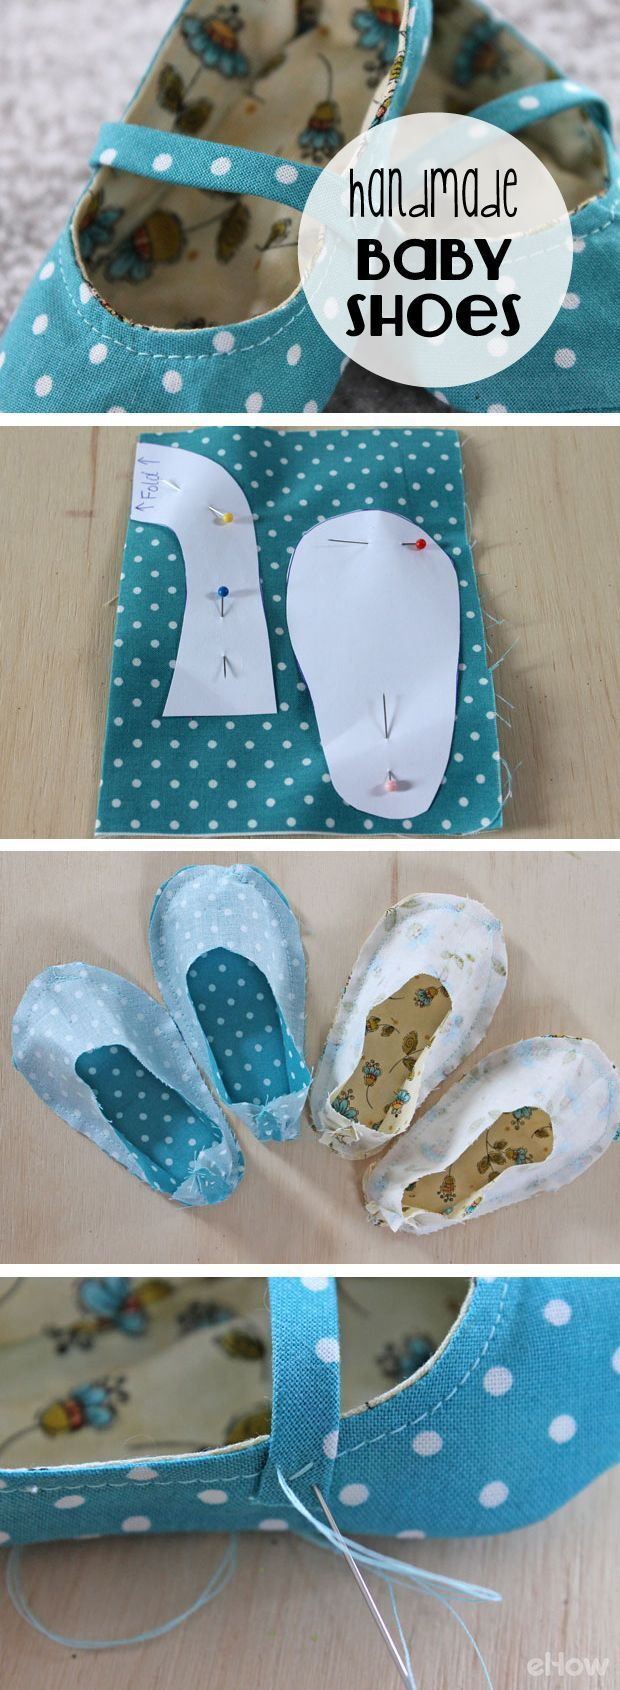 Quelques liens utiles pour faire d'adorables chaussures pour enfant.: http://www.ehow.com/ehow-crafts/blog/handmade-fabric-baby-shoes/?utm_source=pinterest.com&utm_medium=referral&utm_content=blog&utm_campaign=fanpage